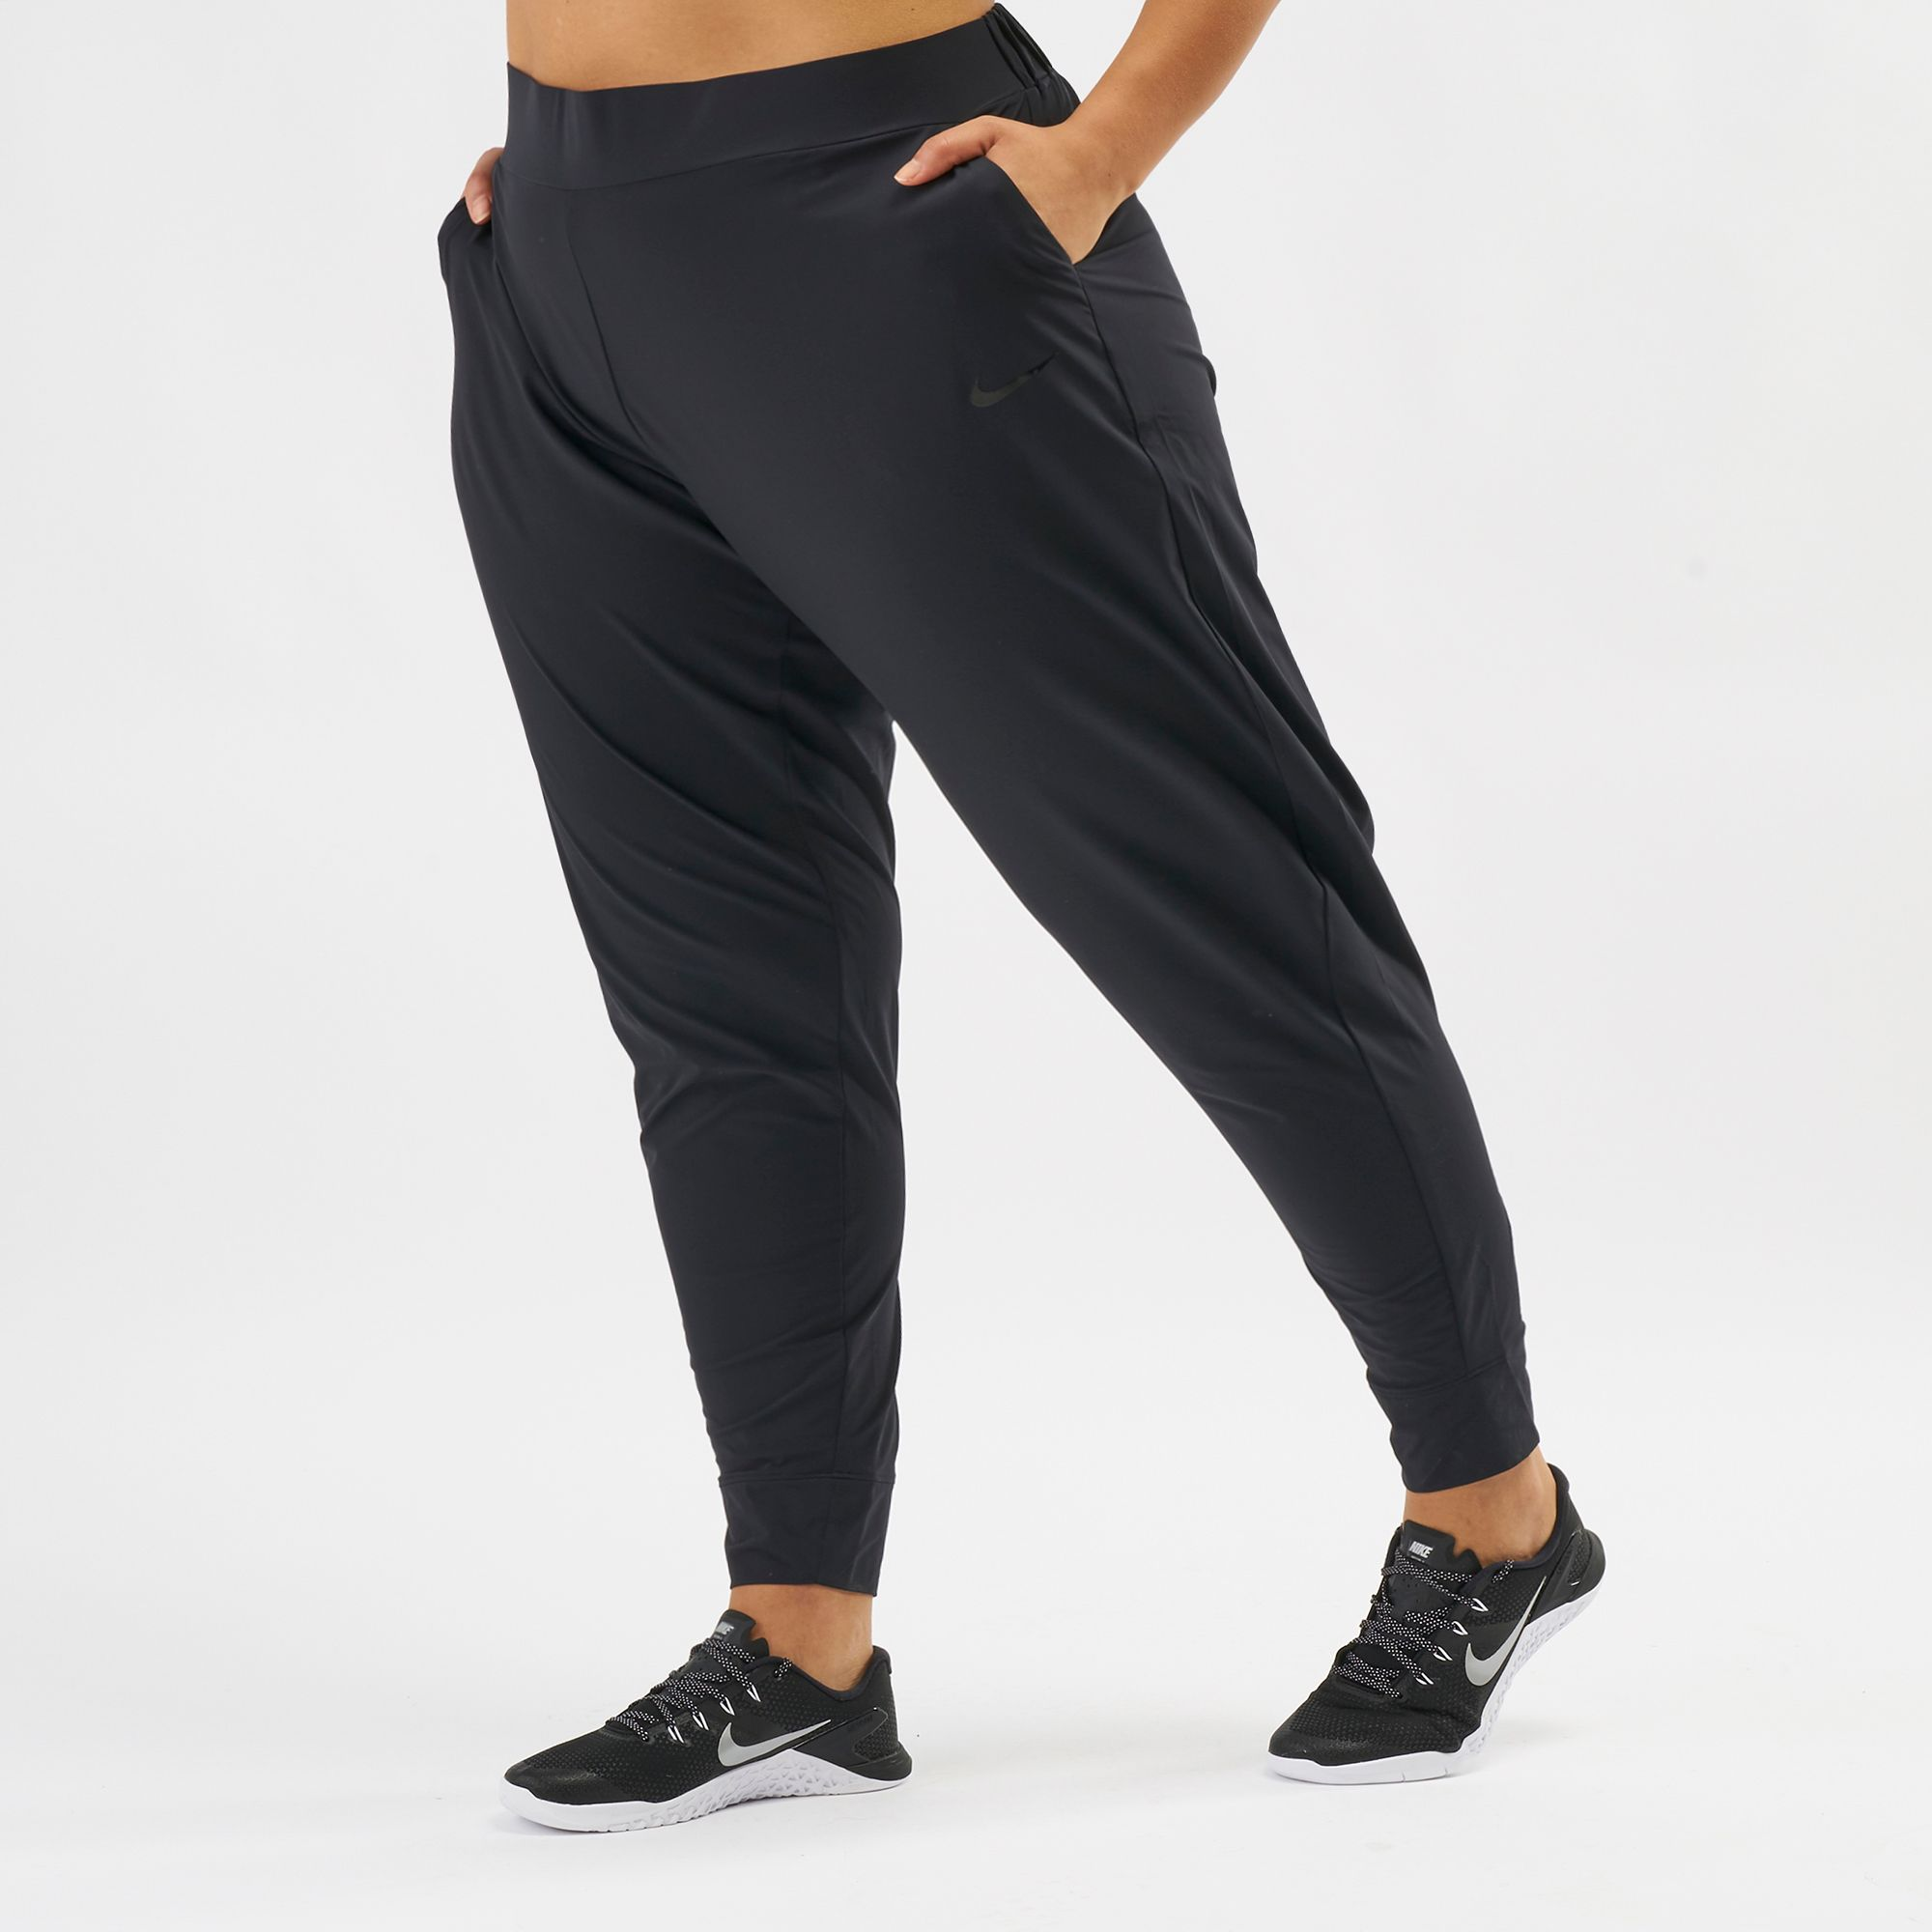 e3c4db6adf3 Nike Flex Bliss Training Pants (Plus Size)